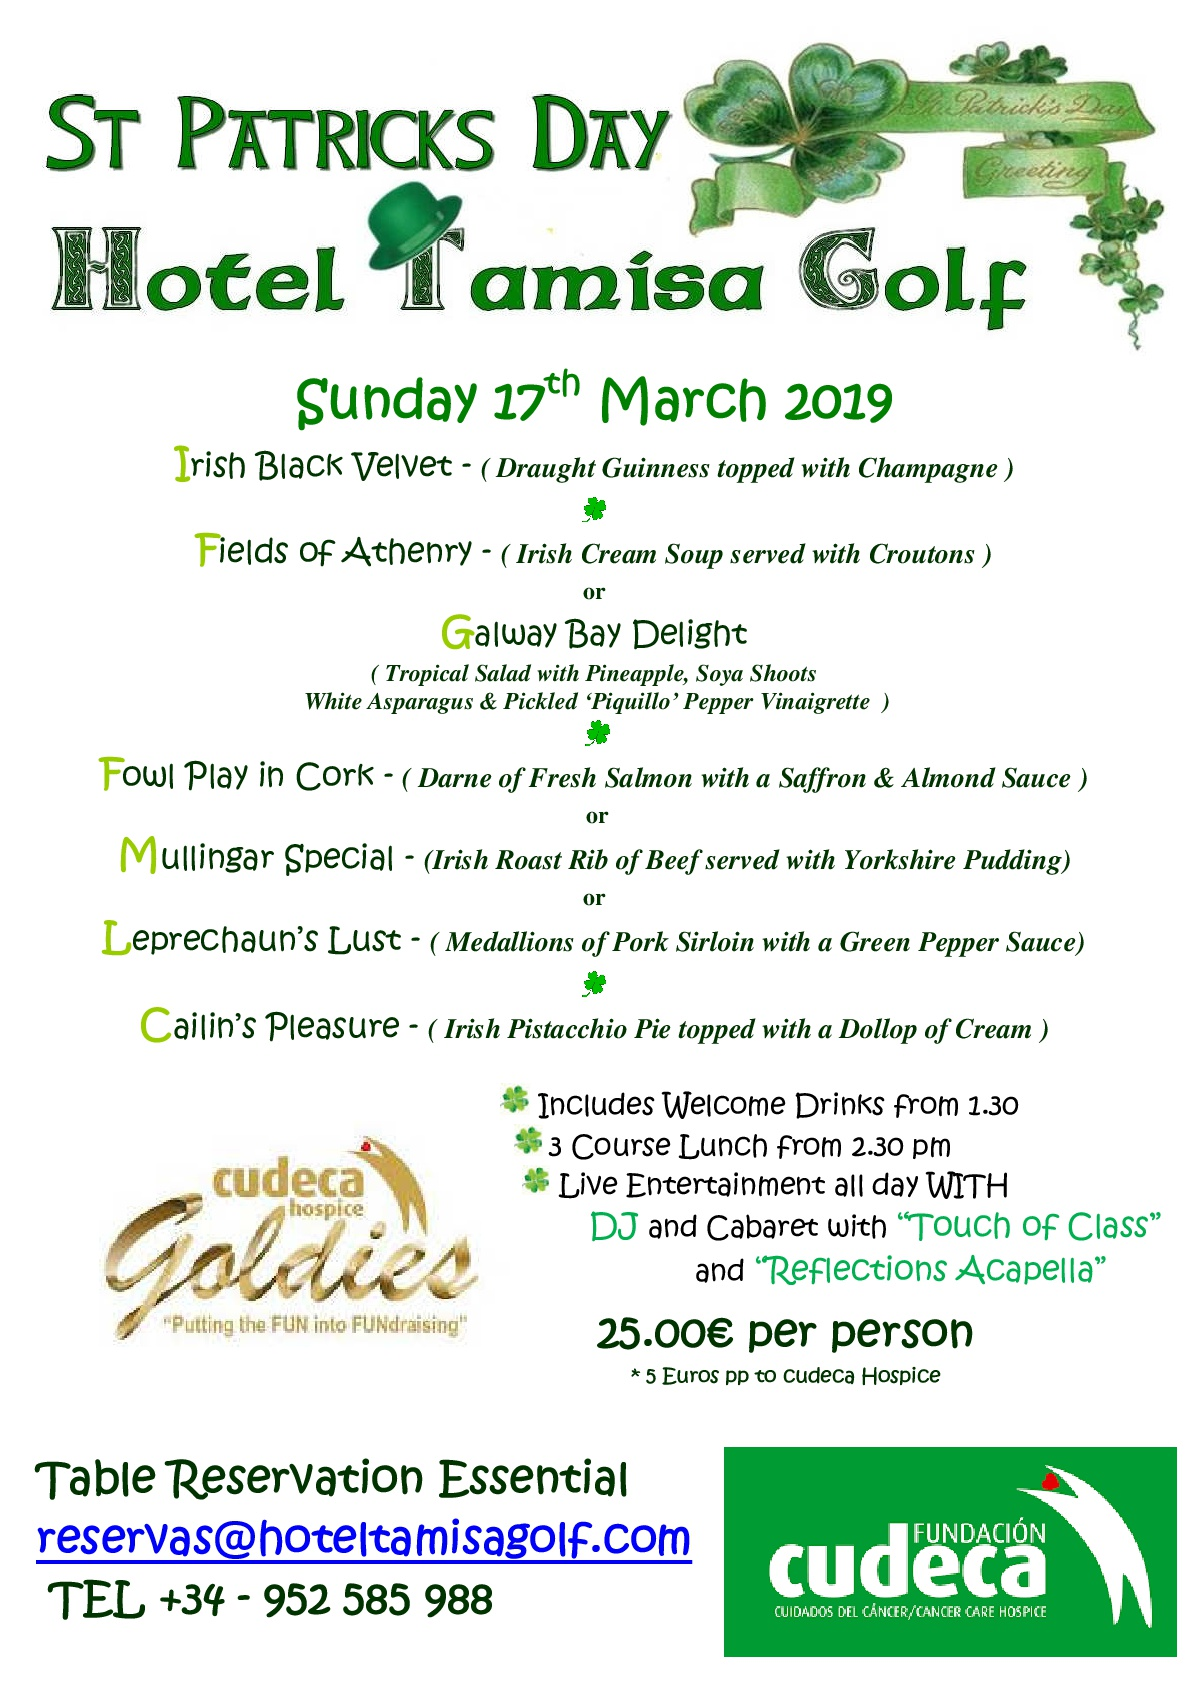 Calling the Irish one more year for the St. Patrick´s Day  at Tamisa Golf with The Cudeca Goldies!